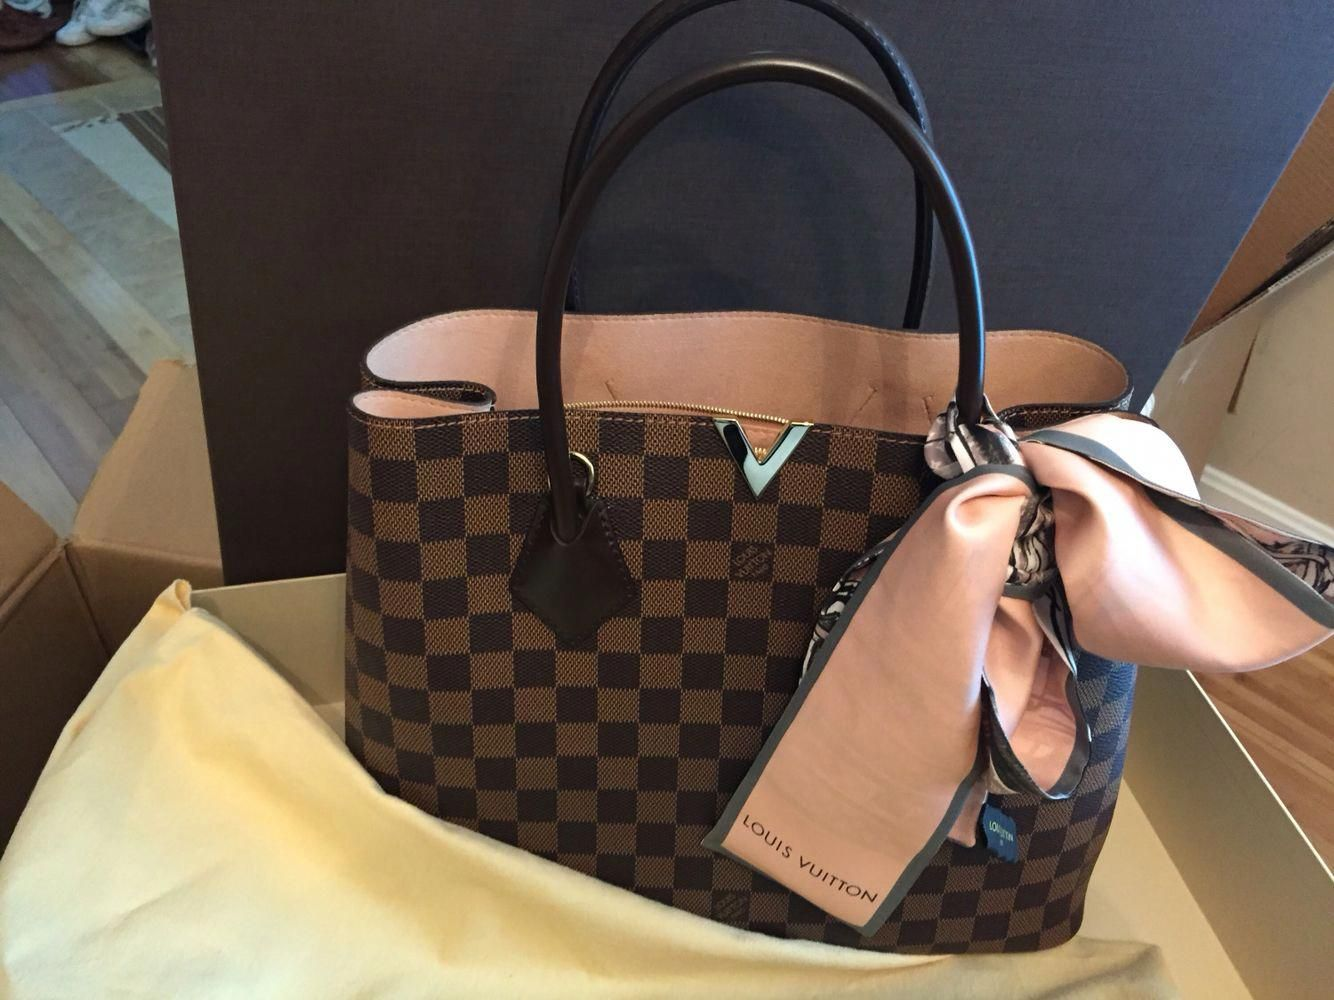 Louis vuitton kensington  Louisvuittonhandbags  228815739fd05